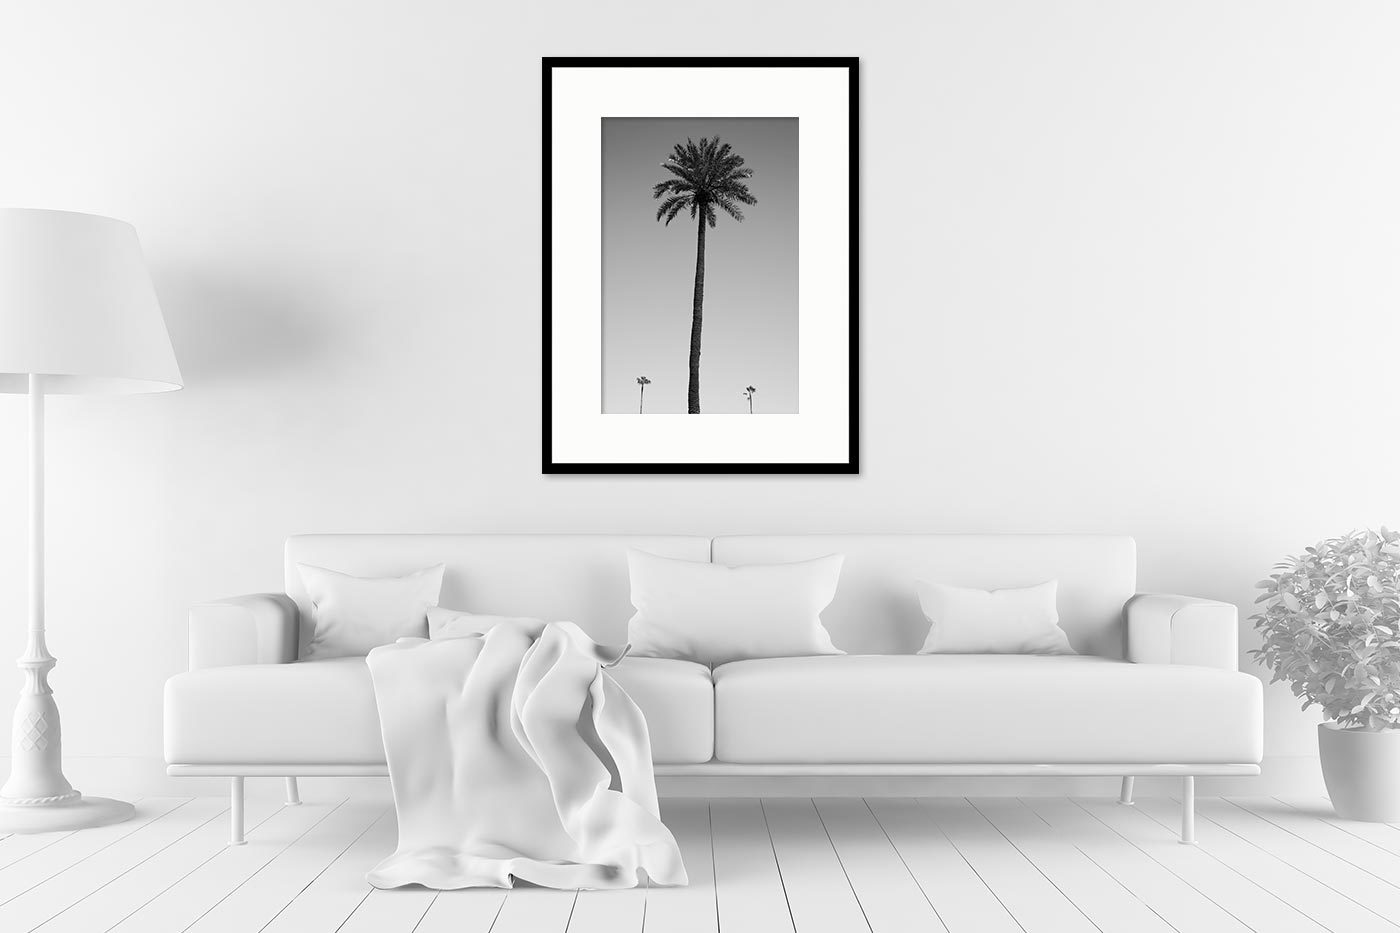 Cadre galerie 60x80 Three palm trees